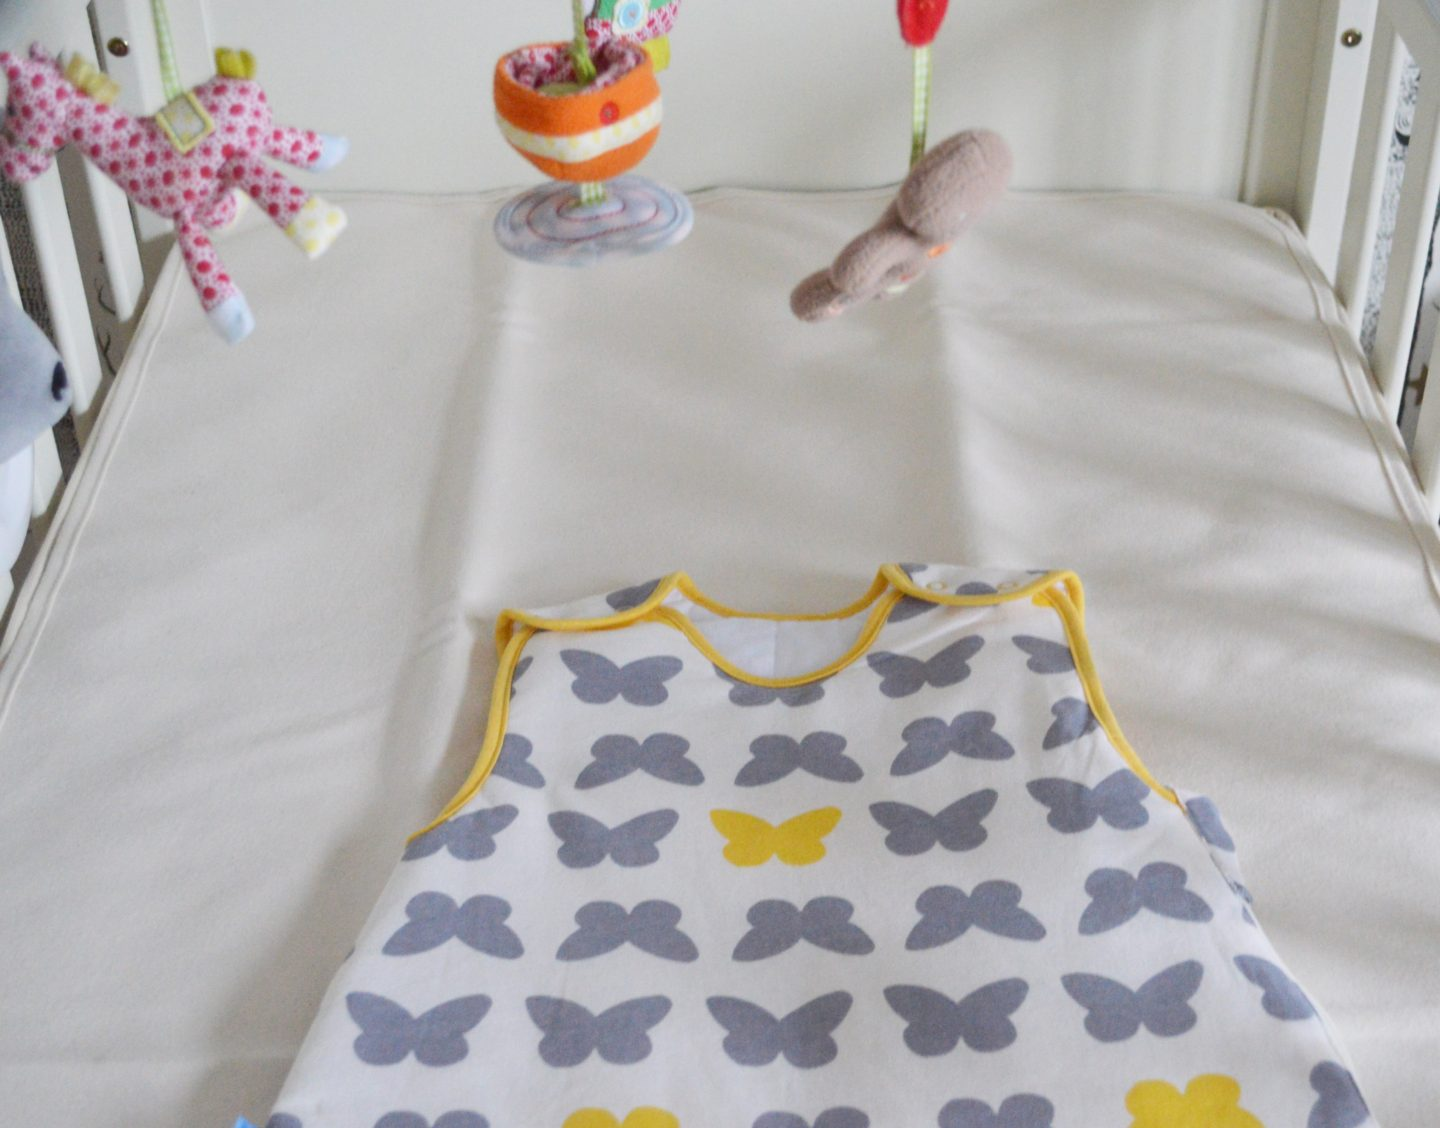 Review: The Little Green Sheep Cot Mattress